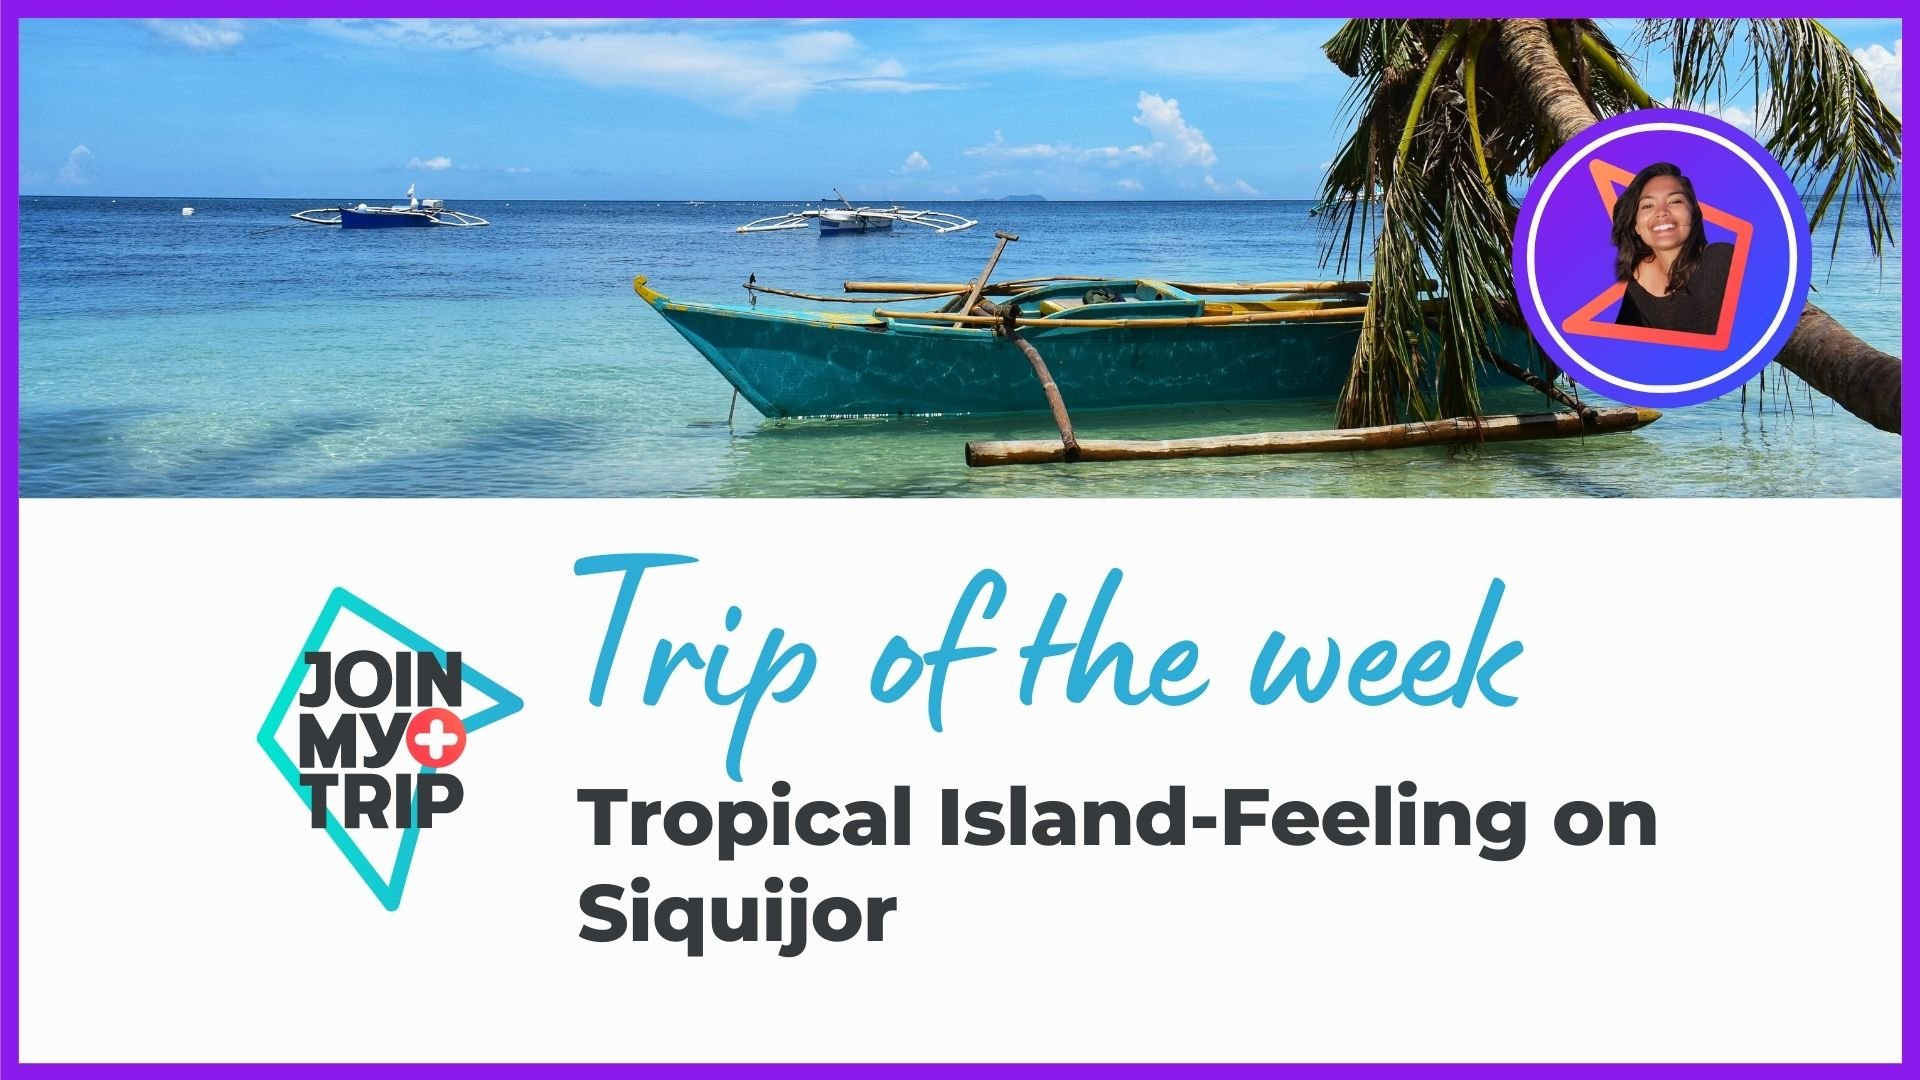 Tropical Island-Feeling on Siquijor on Trip of the Week.